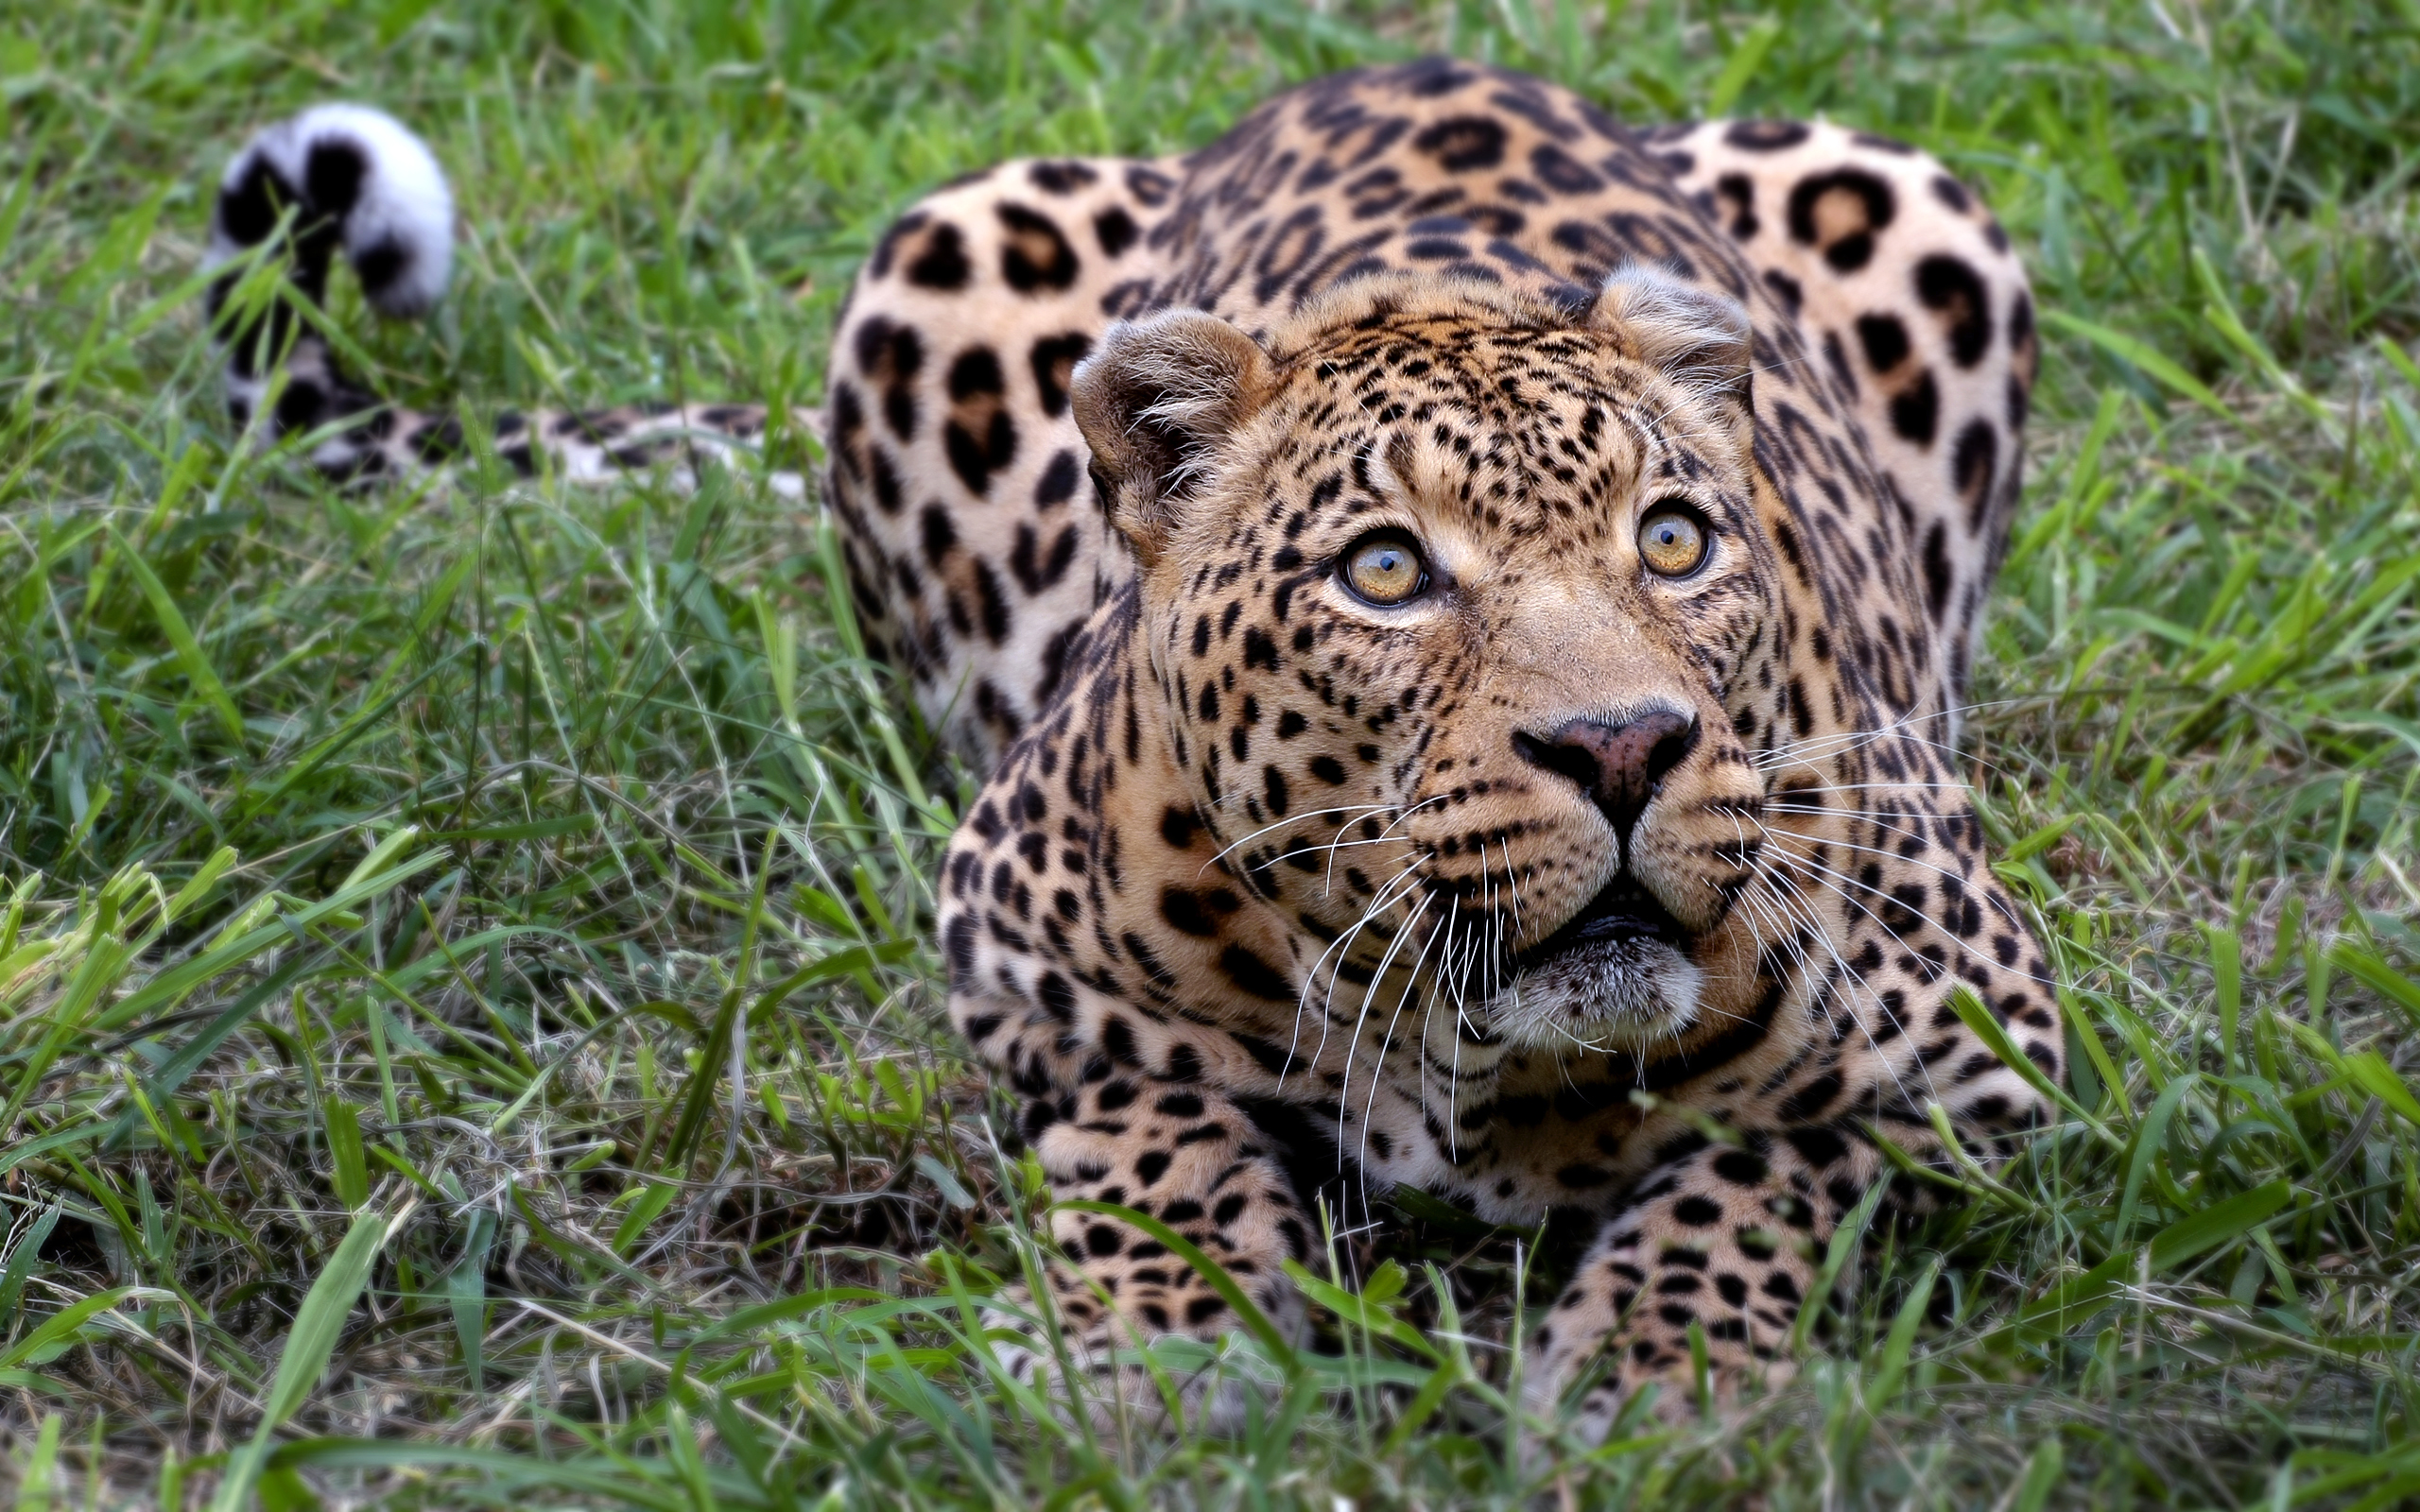 African Leopard 1427.92 Kb